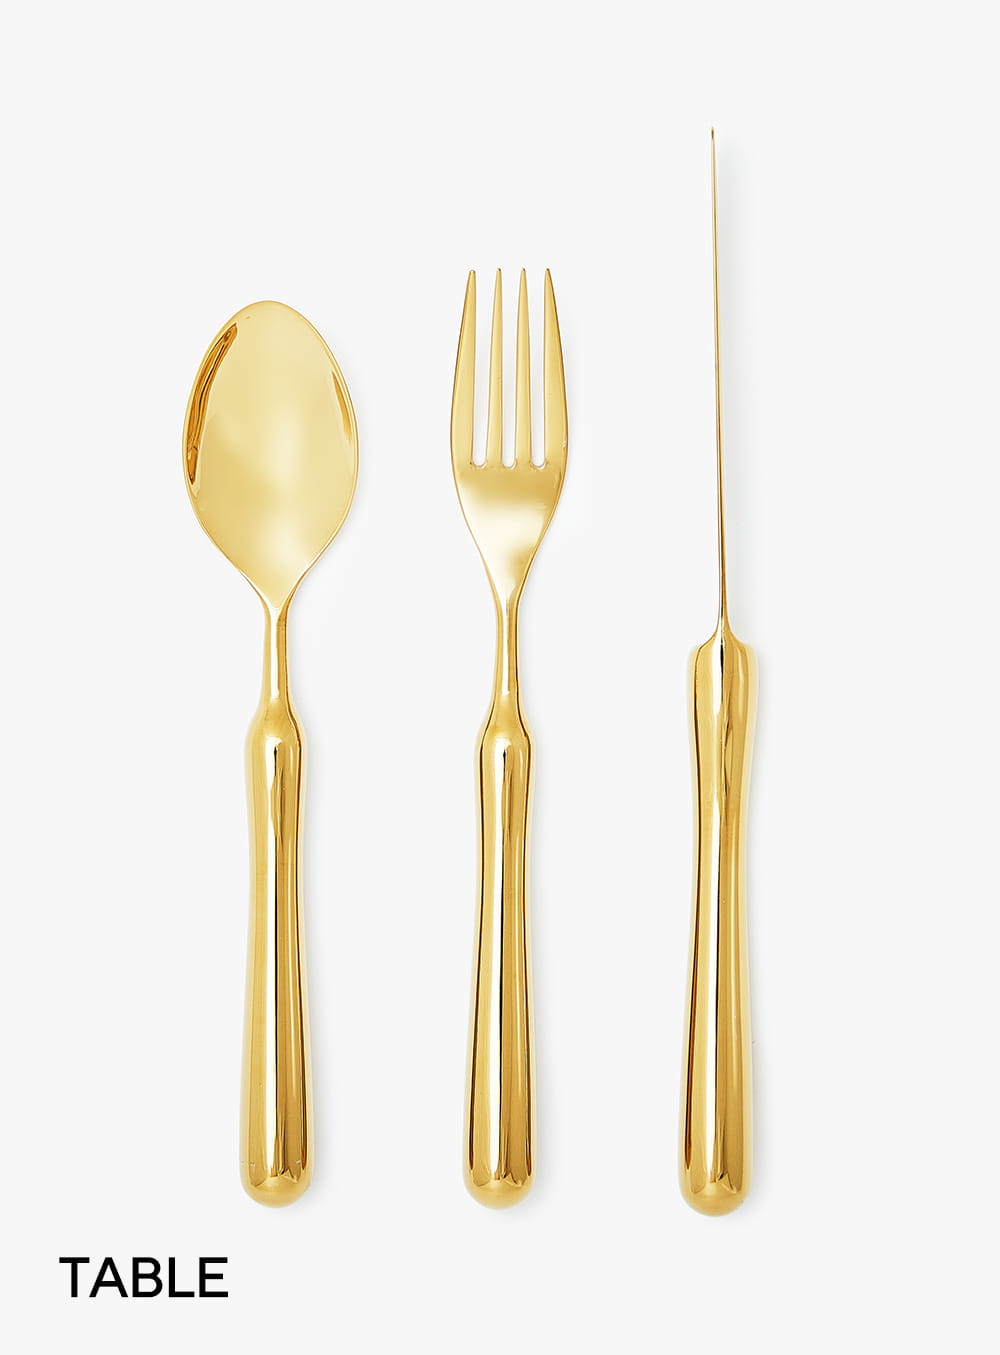 호랑 - Table Size Cutlery Set Gold Edition